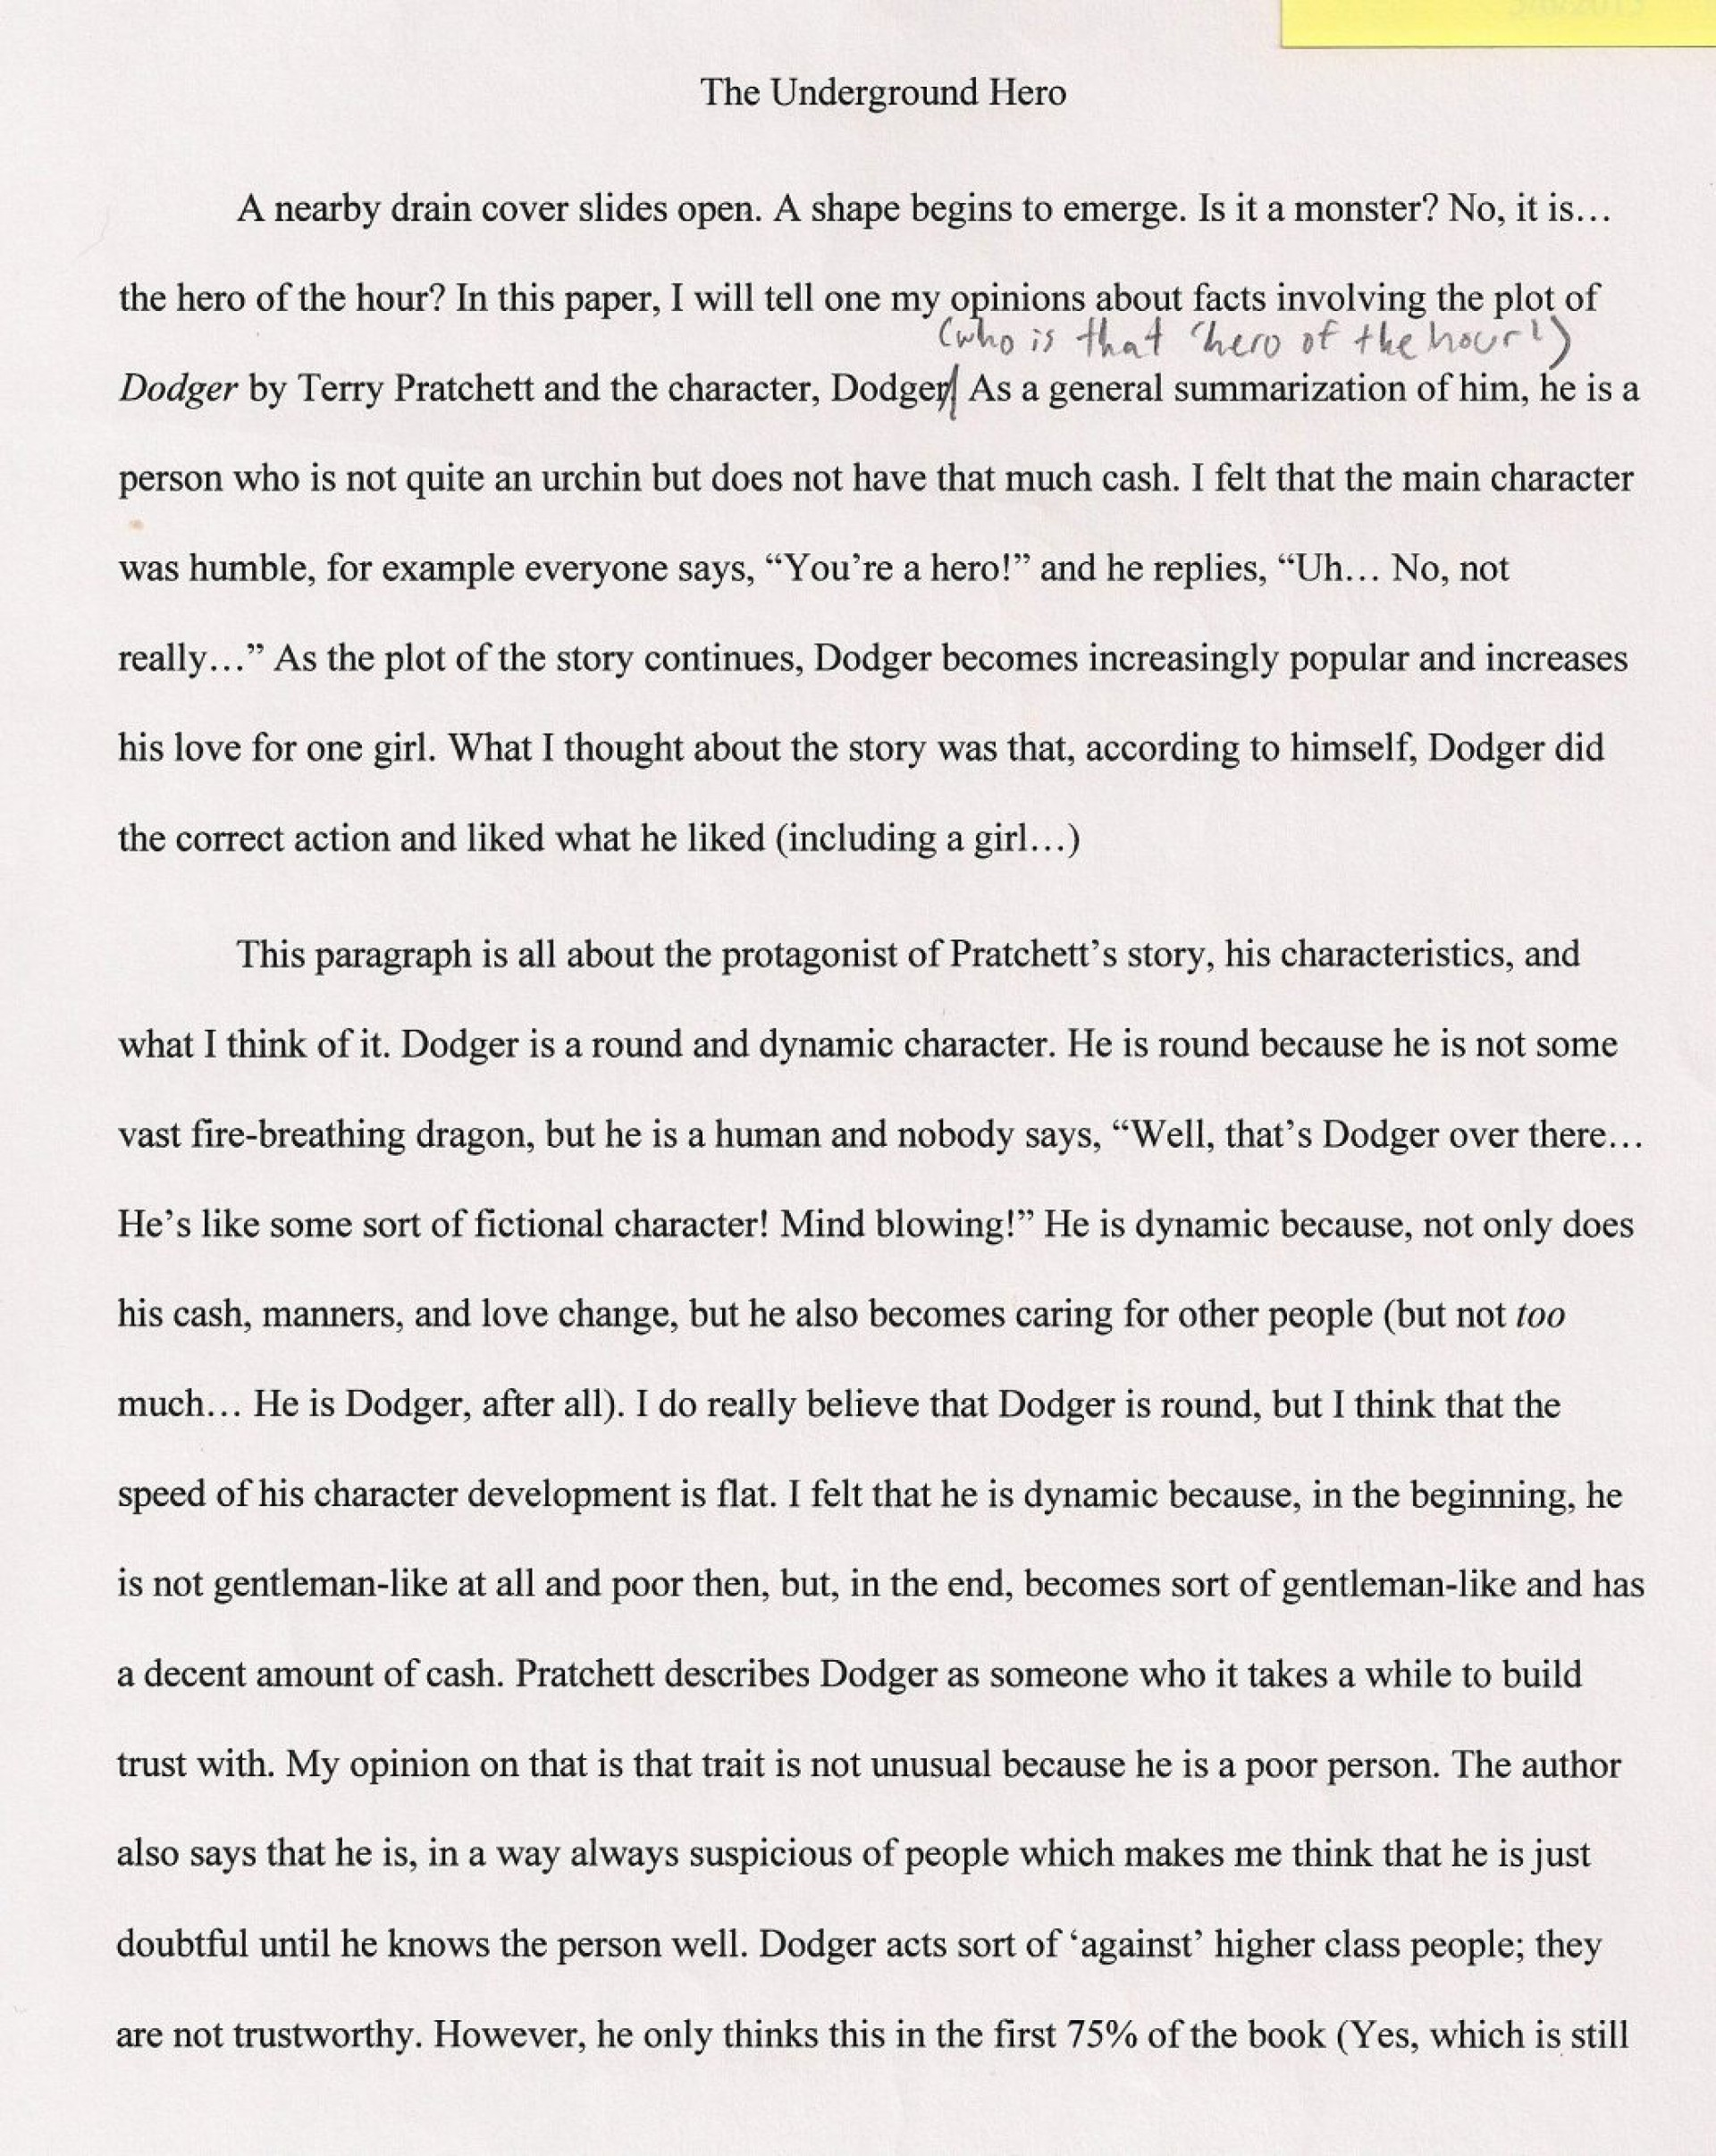 003 The Dream Act Essay On Heroes How To Write Good Underground H Sample Essays New Pdf Topics 1048x1317 Wonderful And Scene Number In A Killer 1920